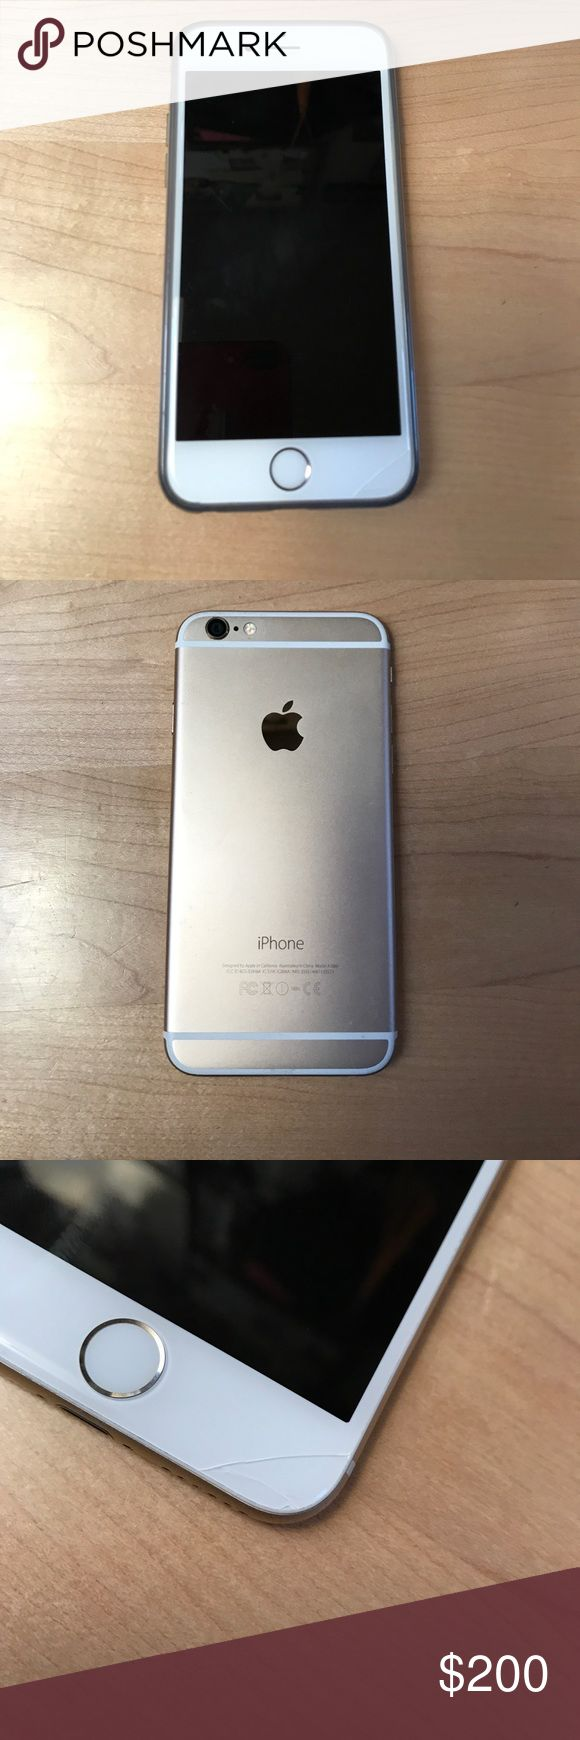 Gold iPhone 64GB, Sprint Small (very small) crack on bottom right of screen (see photo). Works great, just selling because I upgraded. Paid full price for it less than a year and a half ago ($799). Thanks! Other